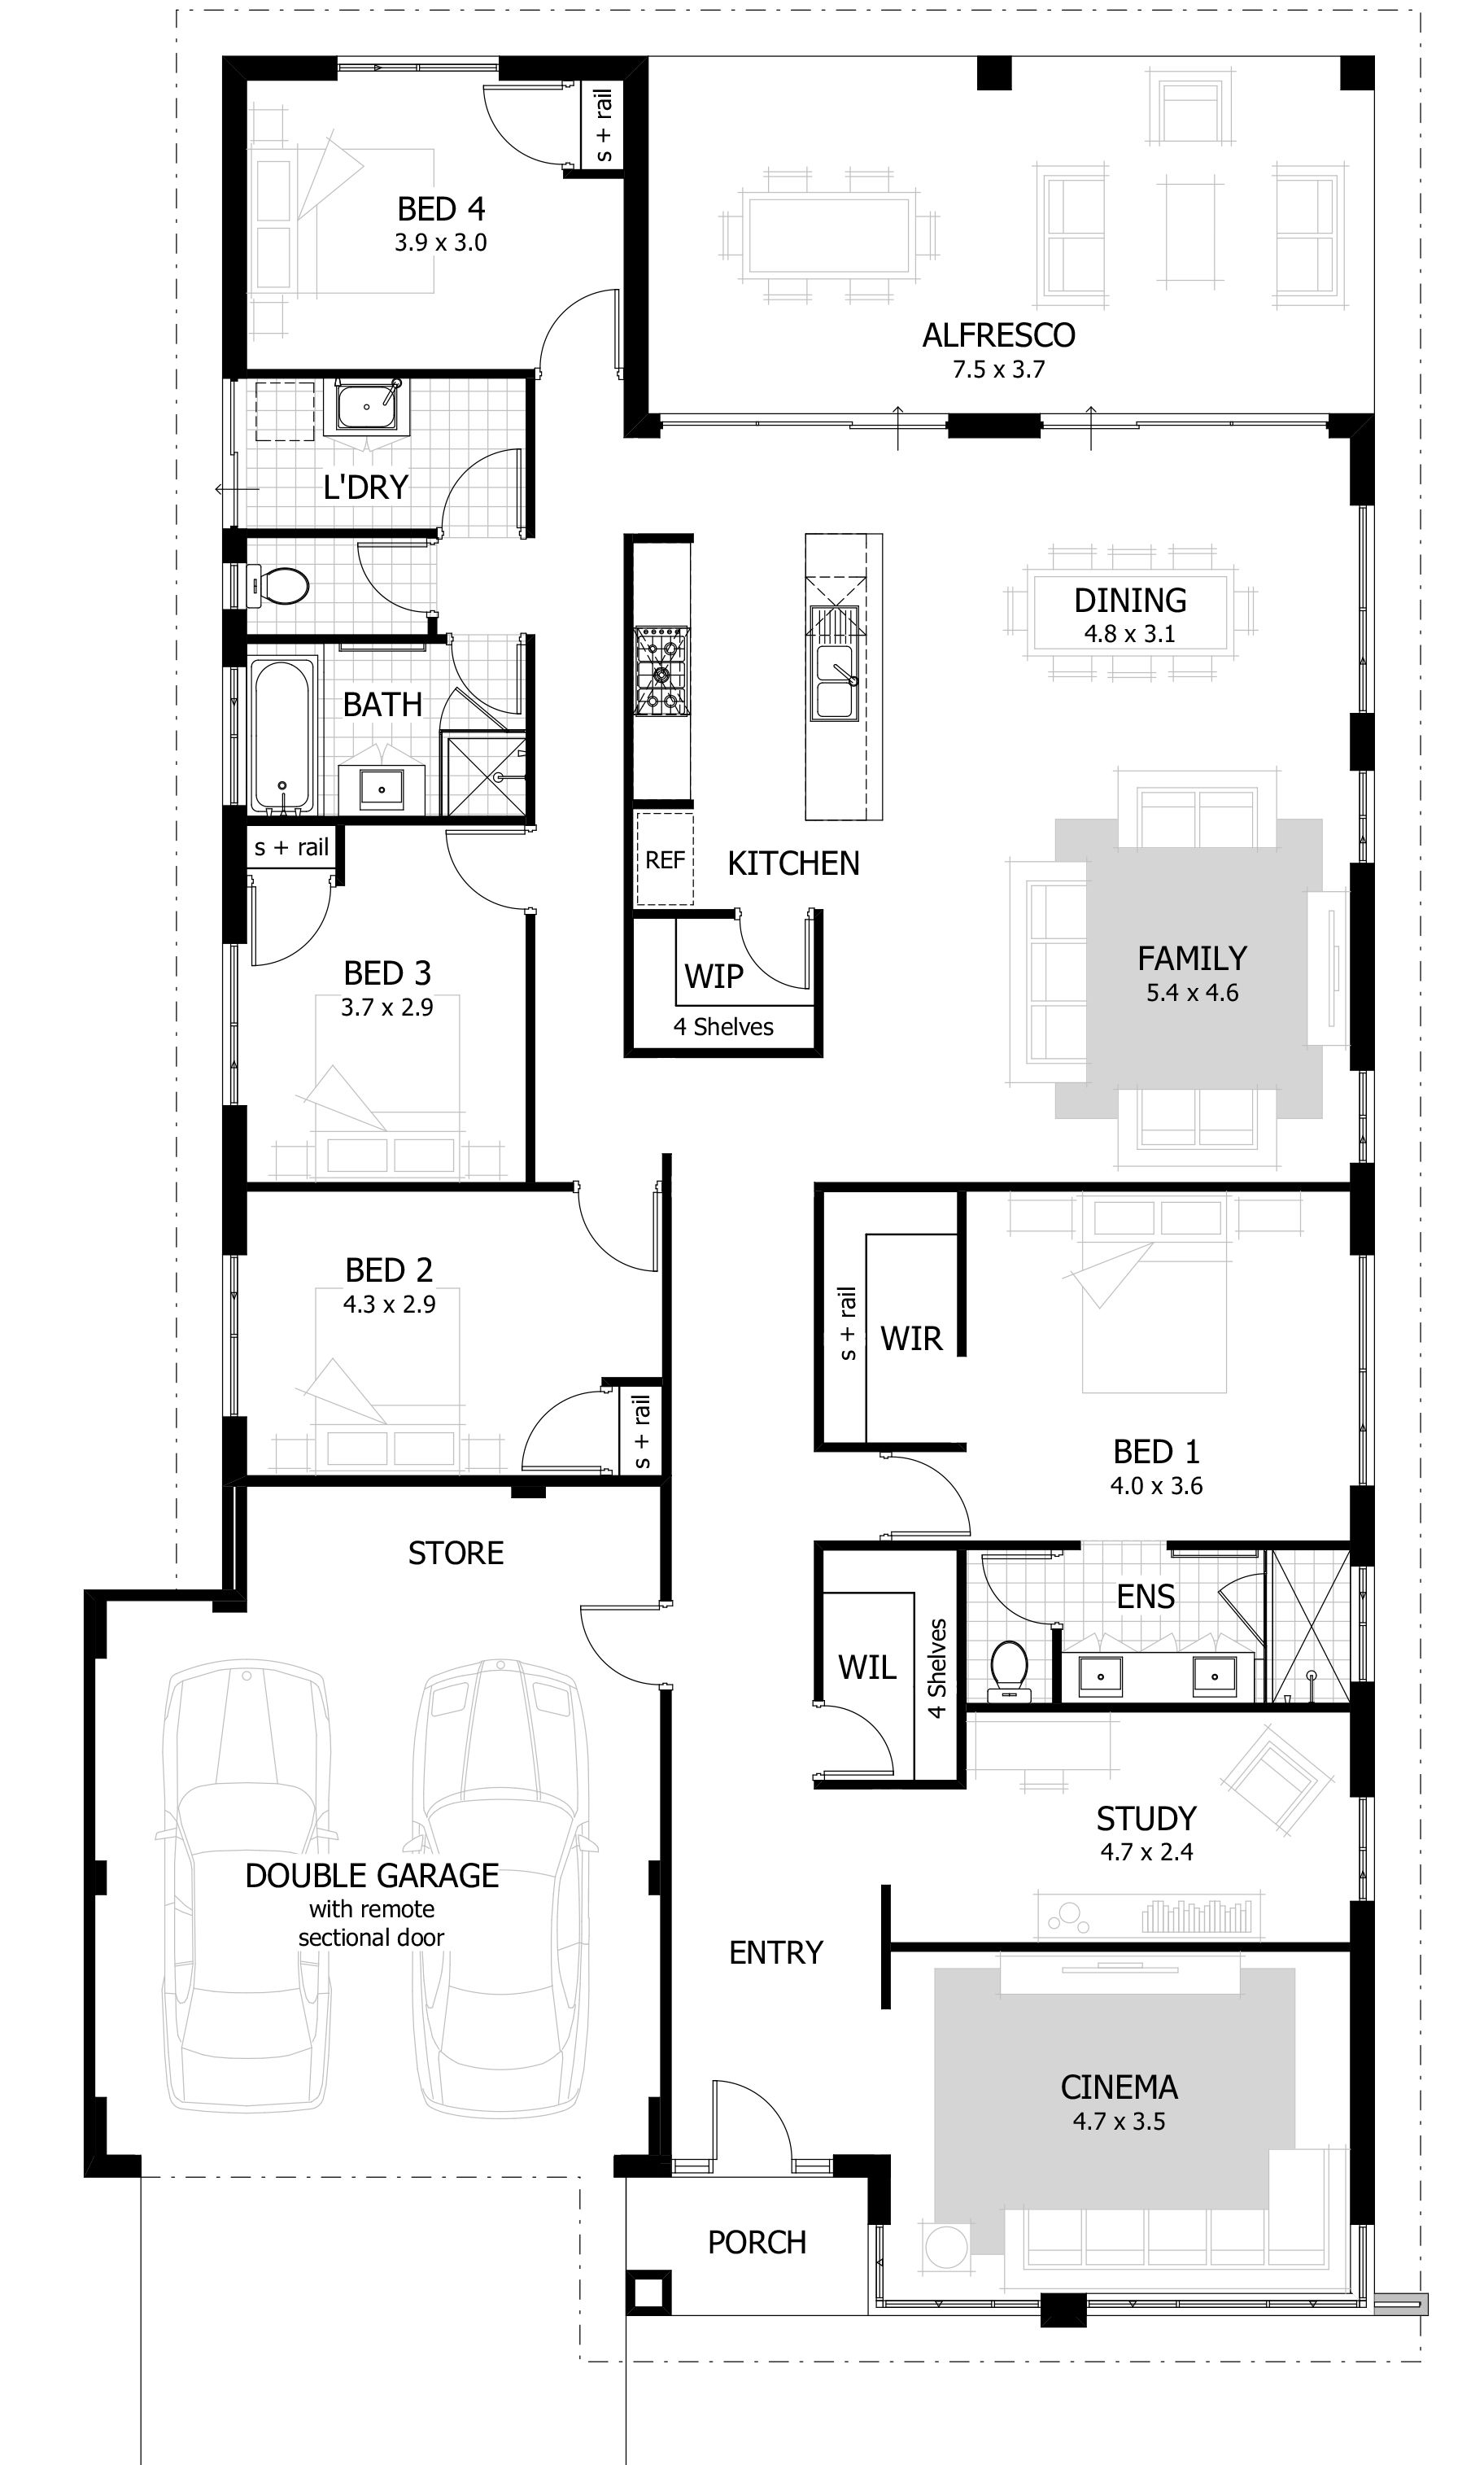 find a 4 bedroom home thats right for you from our current range of home designs and plans these 4 bedroom home designs are suitable for a wide variety of - Home Floor Plan Designs